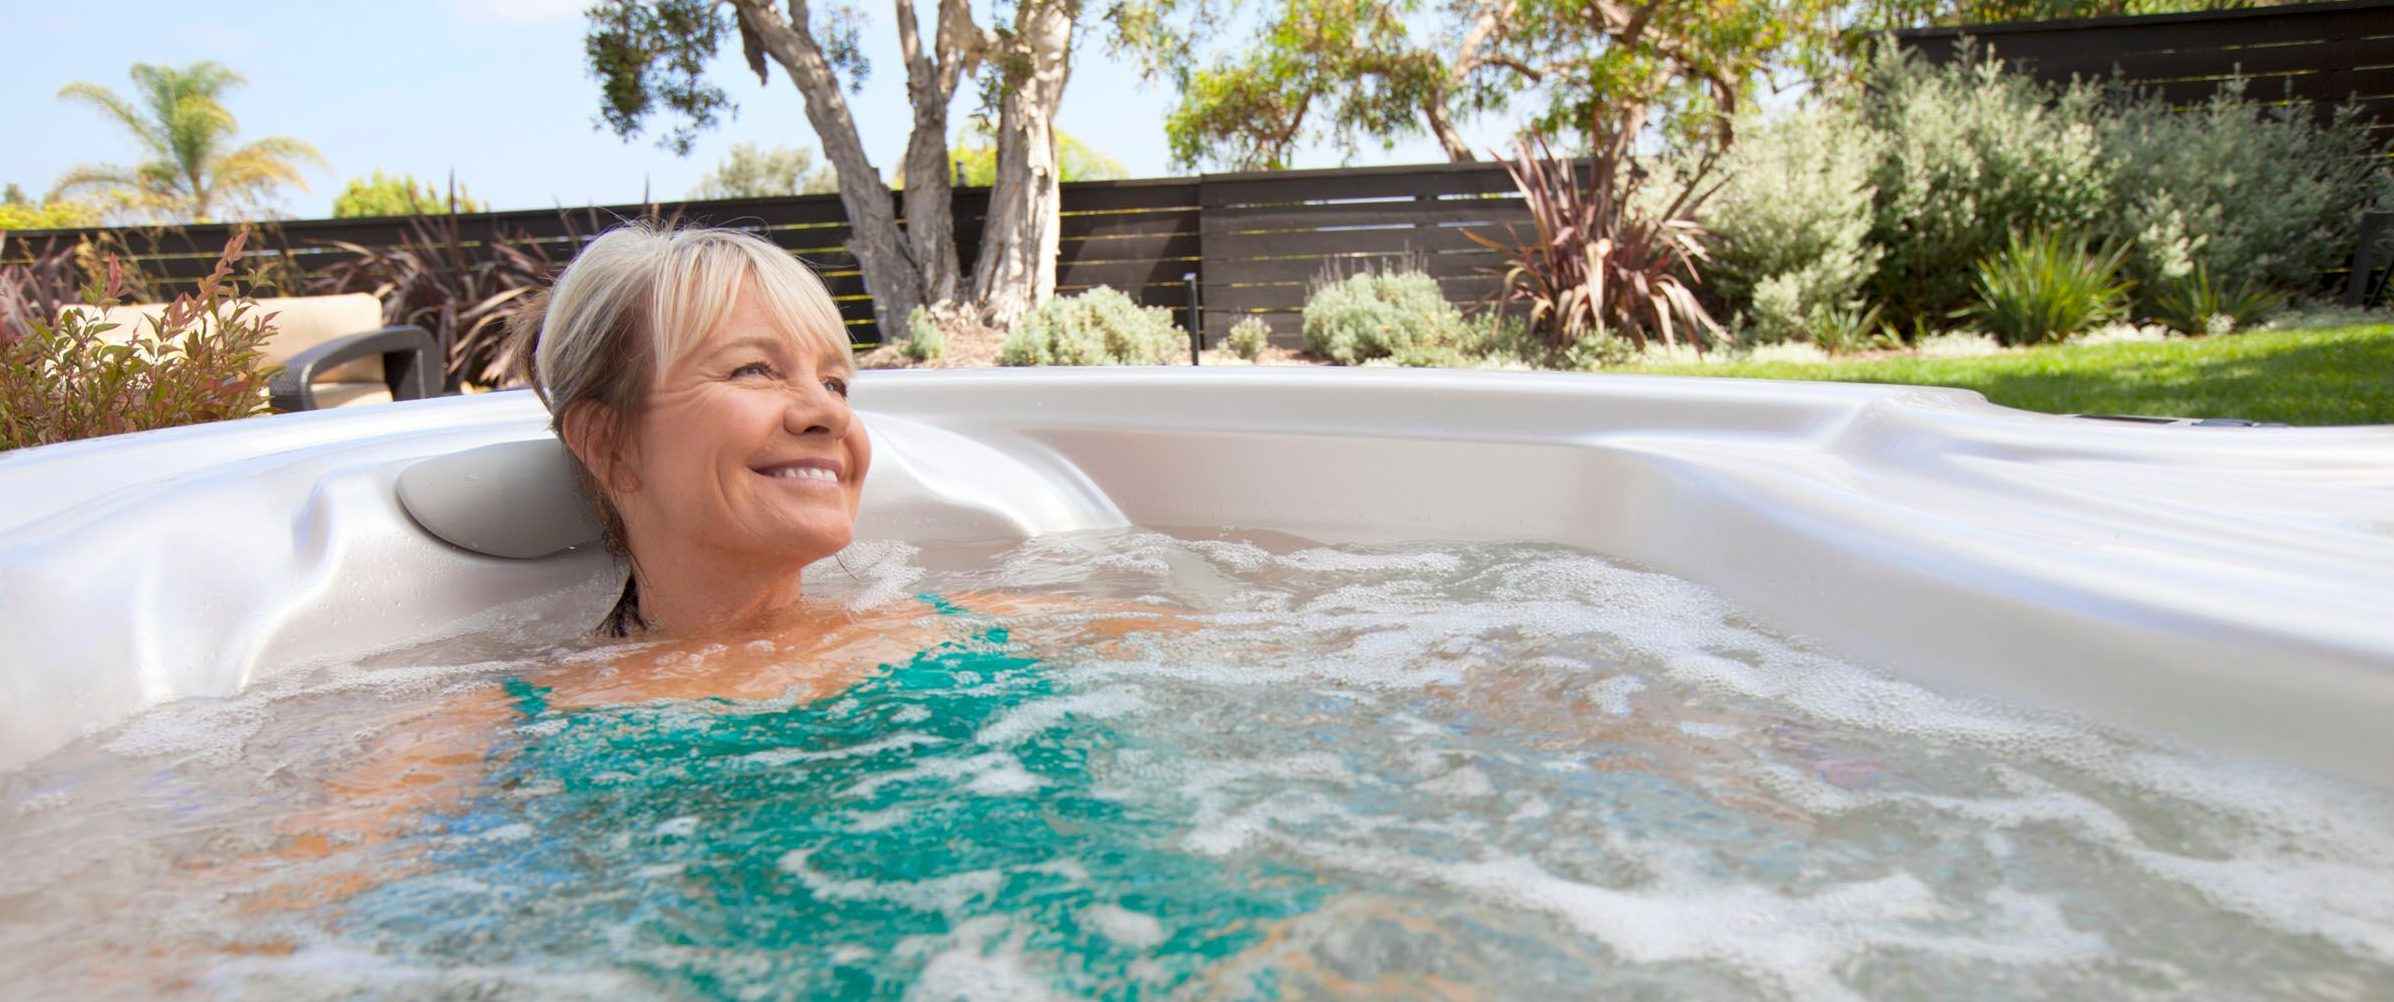 How Much Does Hot Tub Installation Cost?